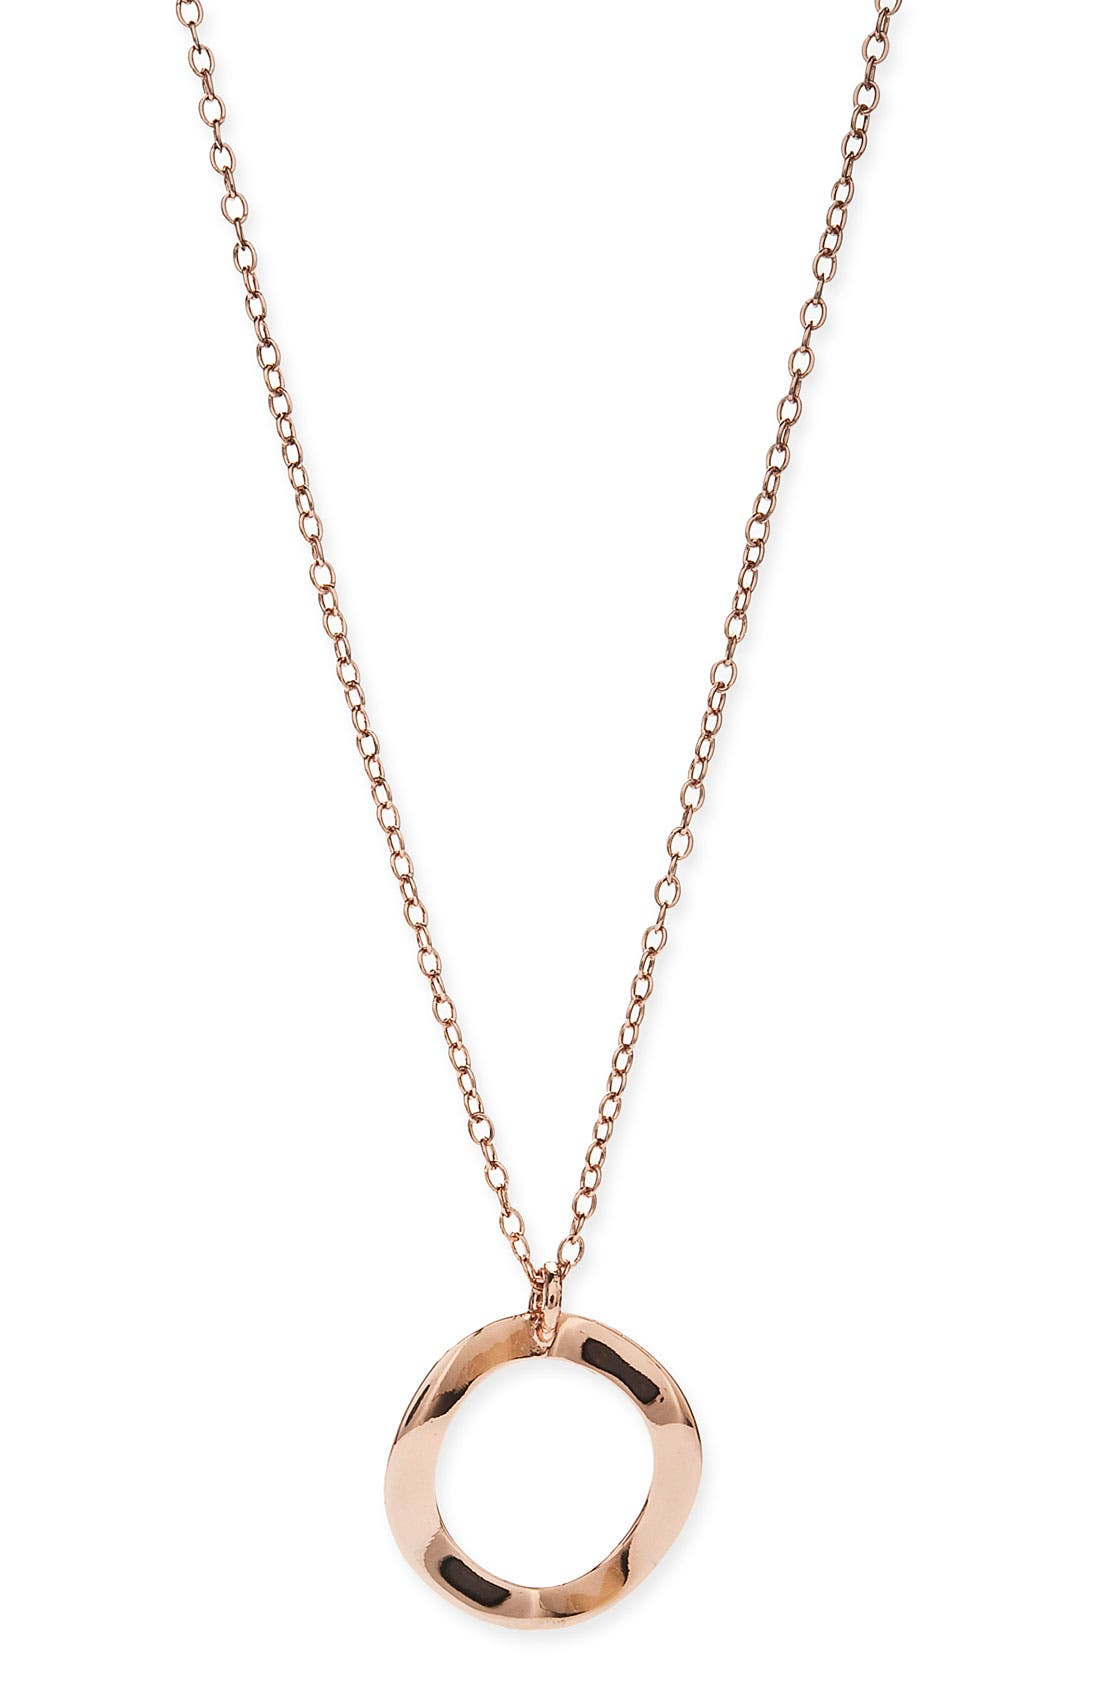 Main Image - Ippolita 'Ippolitini Circle of Life' Rosé Charm Necklace